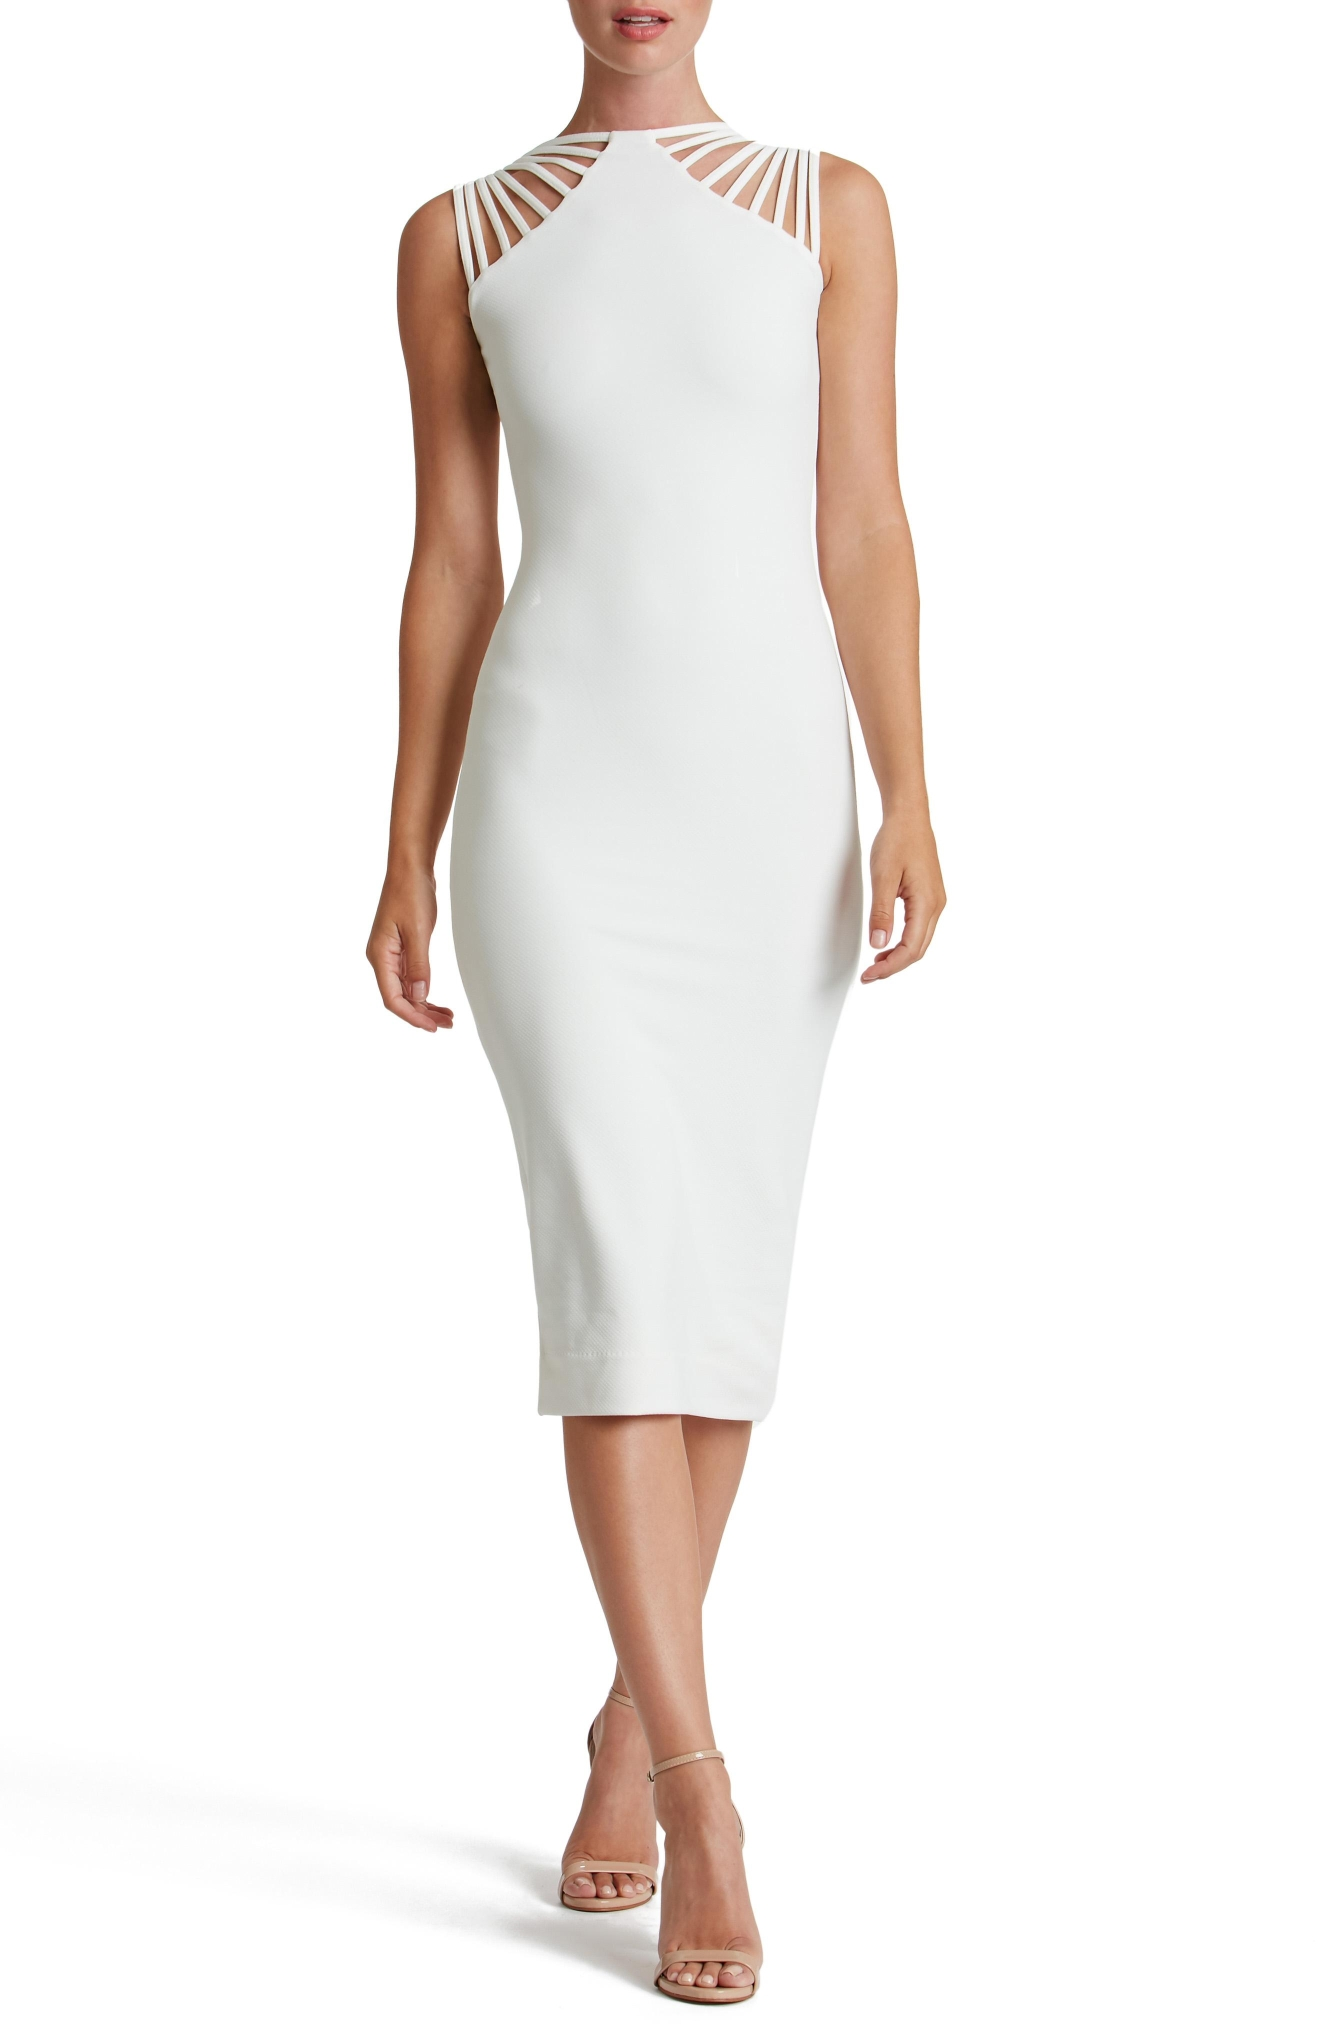 Dress the Population 'Gwen' Knit Midi Dress, $194, Nordstrom.com (Image: Courtesy Nordstrom)